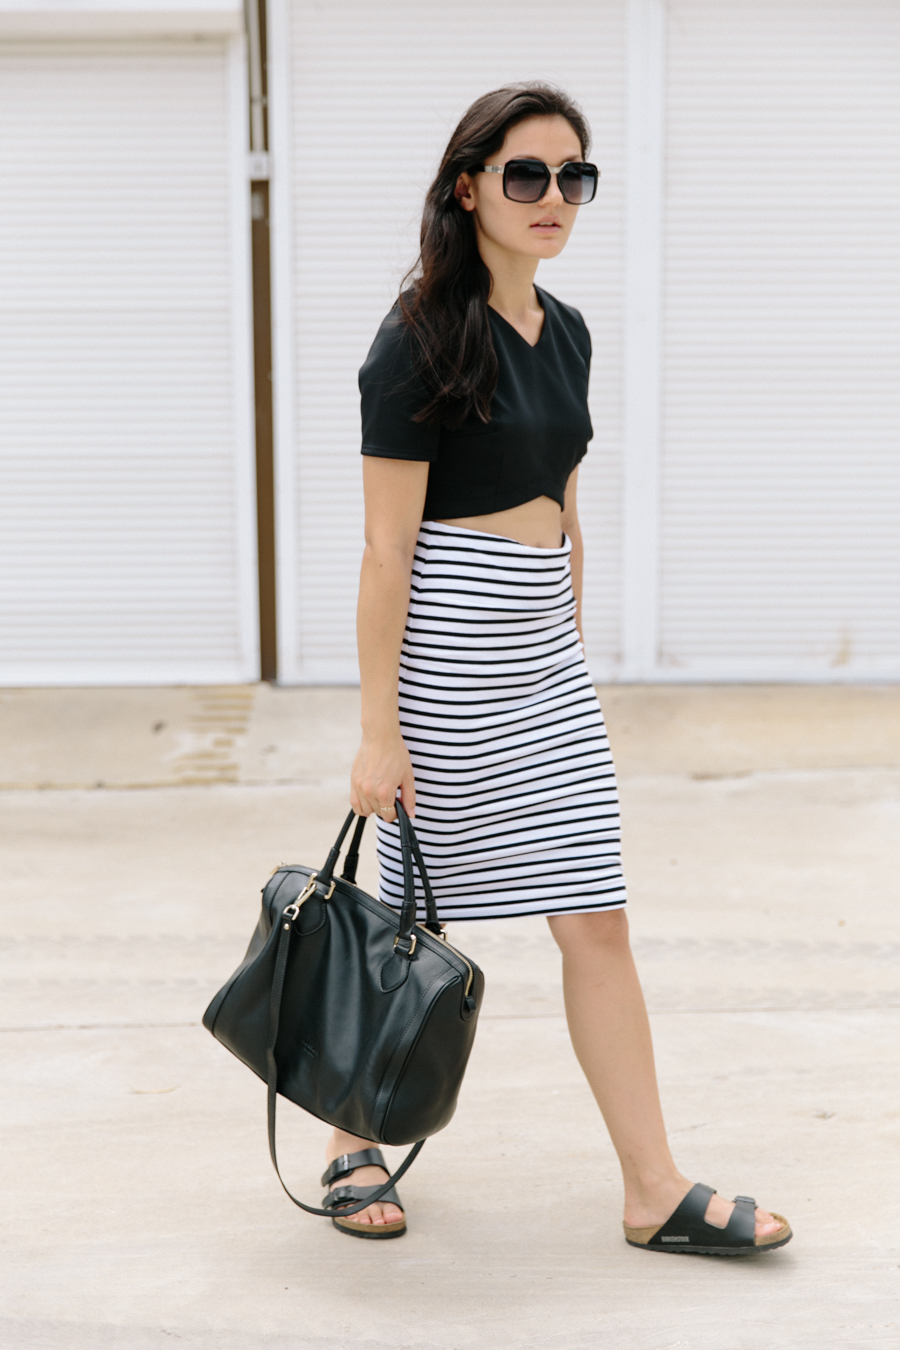 Minimalist fashion blogger. Striped pencil skirt. Birkenstock sandals.